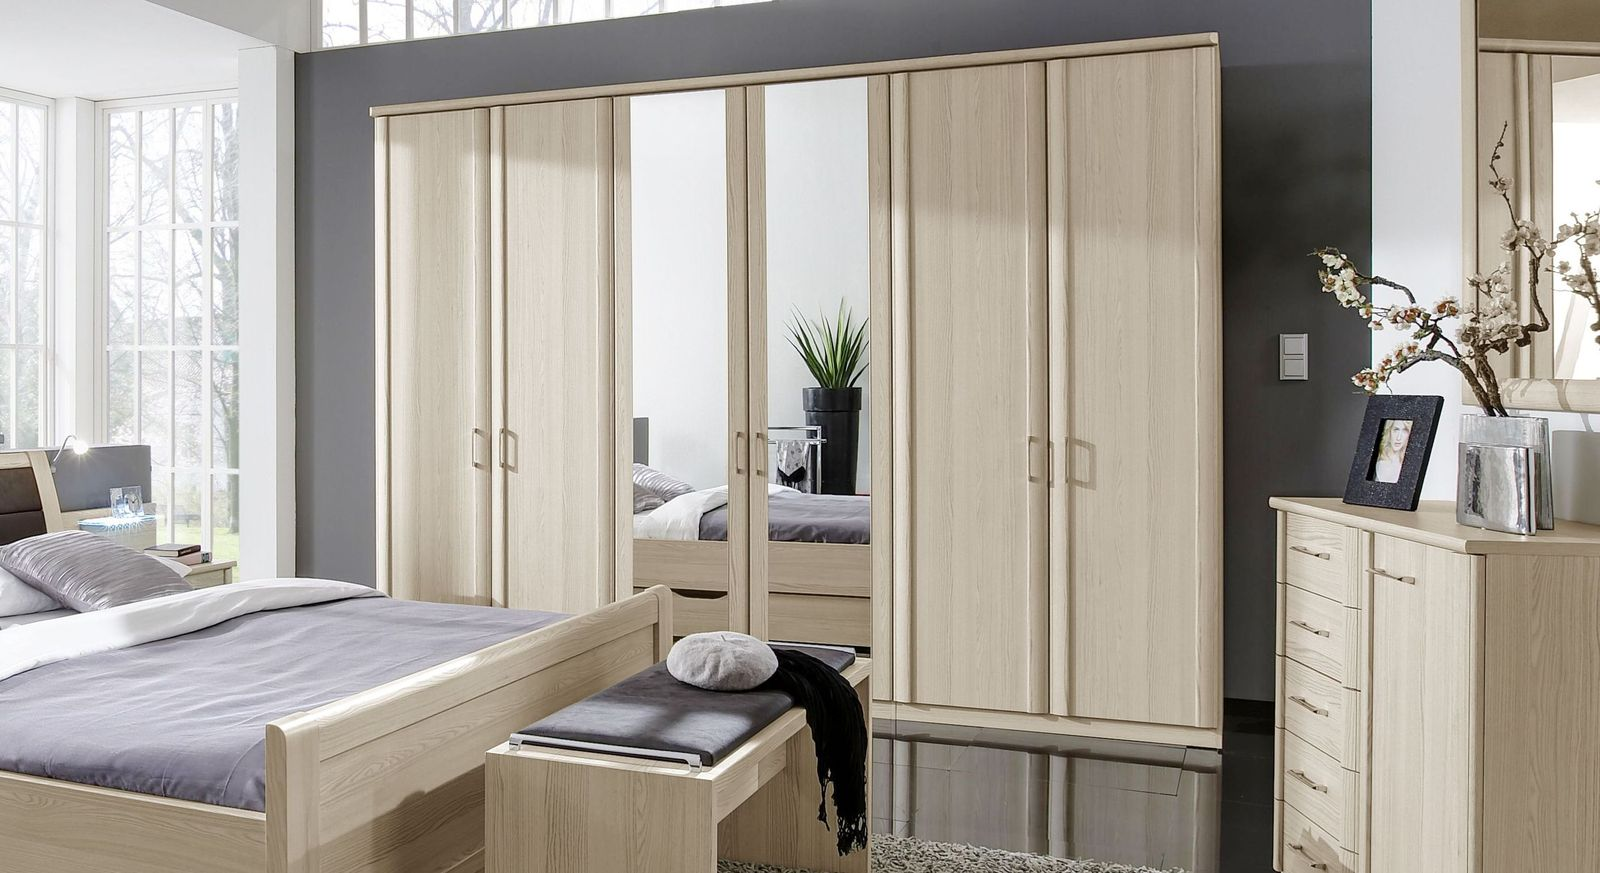 kleiderschrank mit dreht ren individuell konfigurierbar. Black Bedroom Furniture Sets. Home Design Ideas